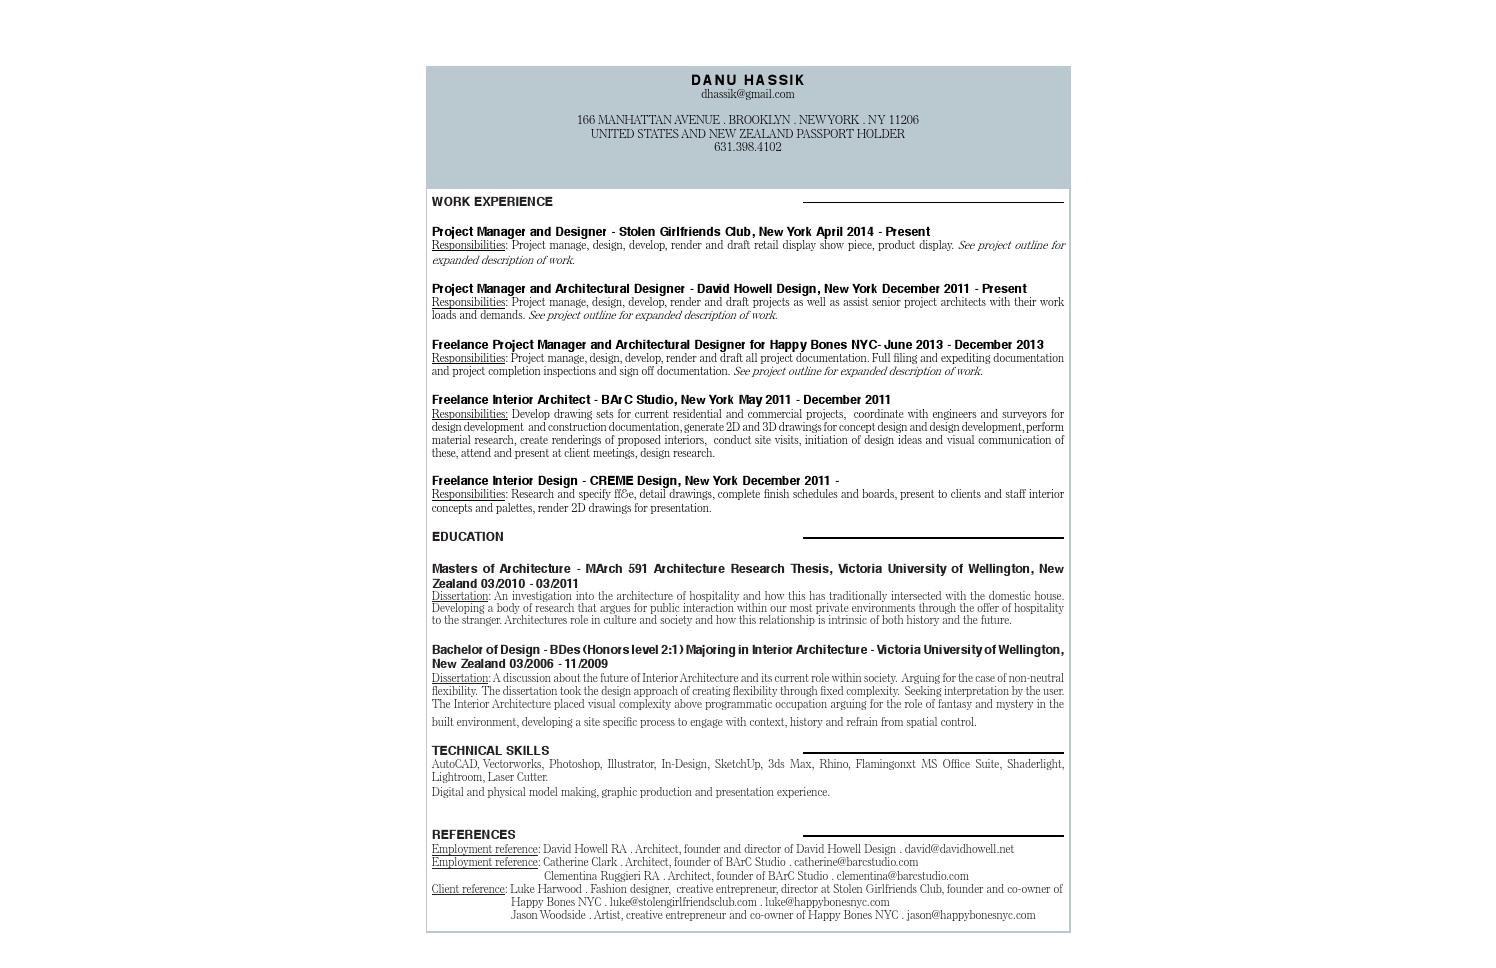 Resume Dhassik By Danu Hassik